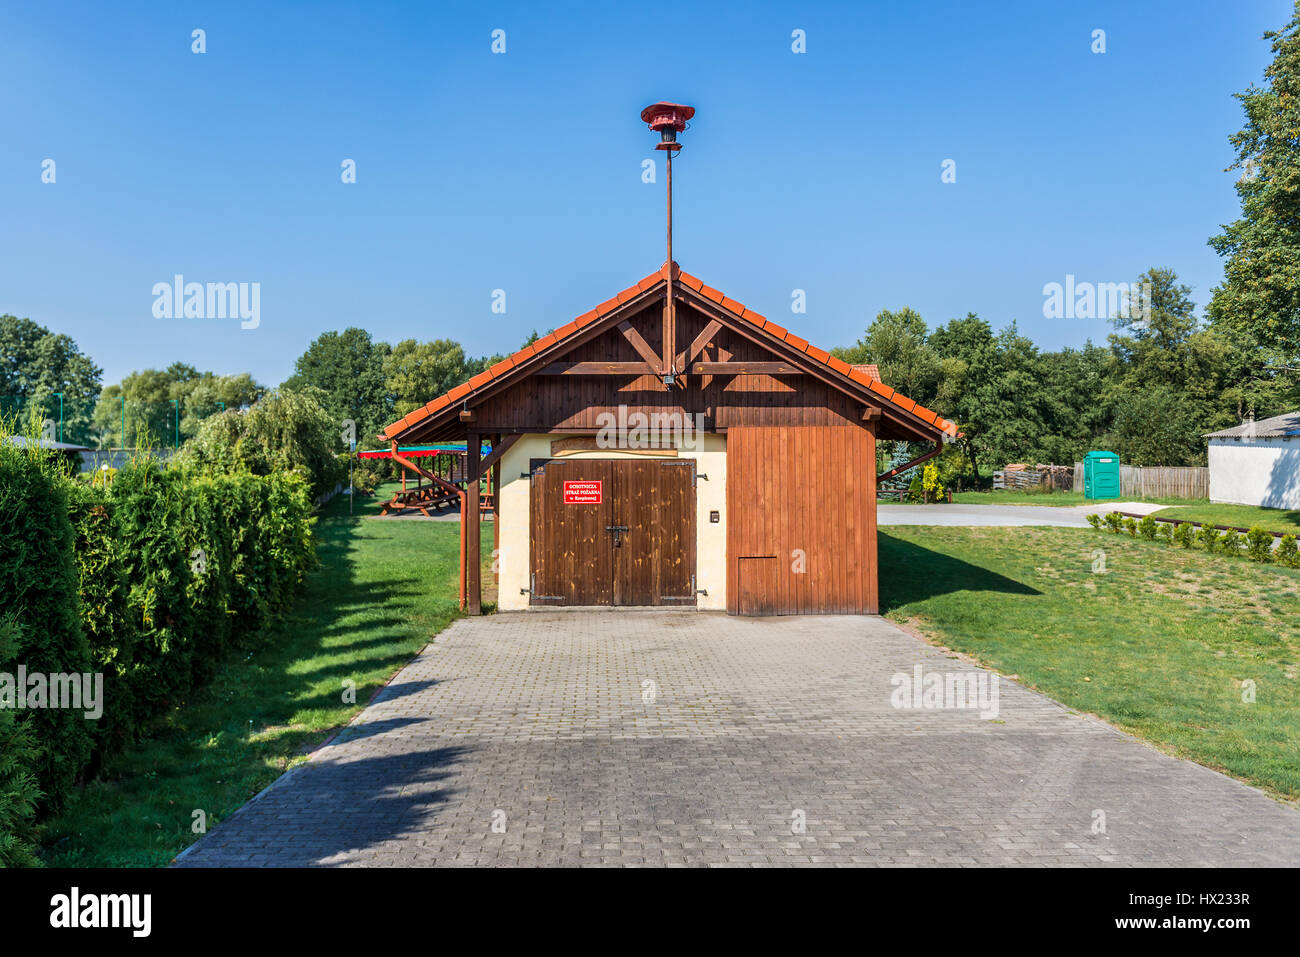 Small fire station of Polsih volunteer fire department in Rzepiczna small village in Kuyavian-Pomeranian Voivodeship - Stock Image